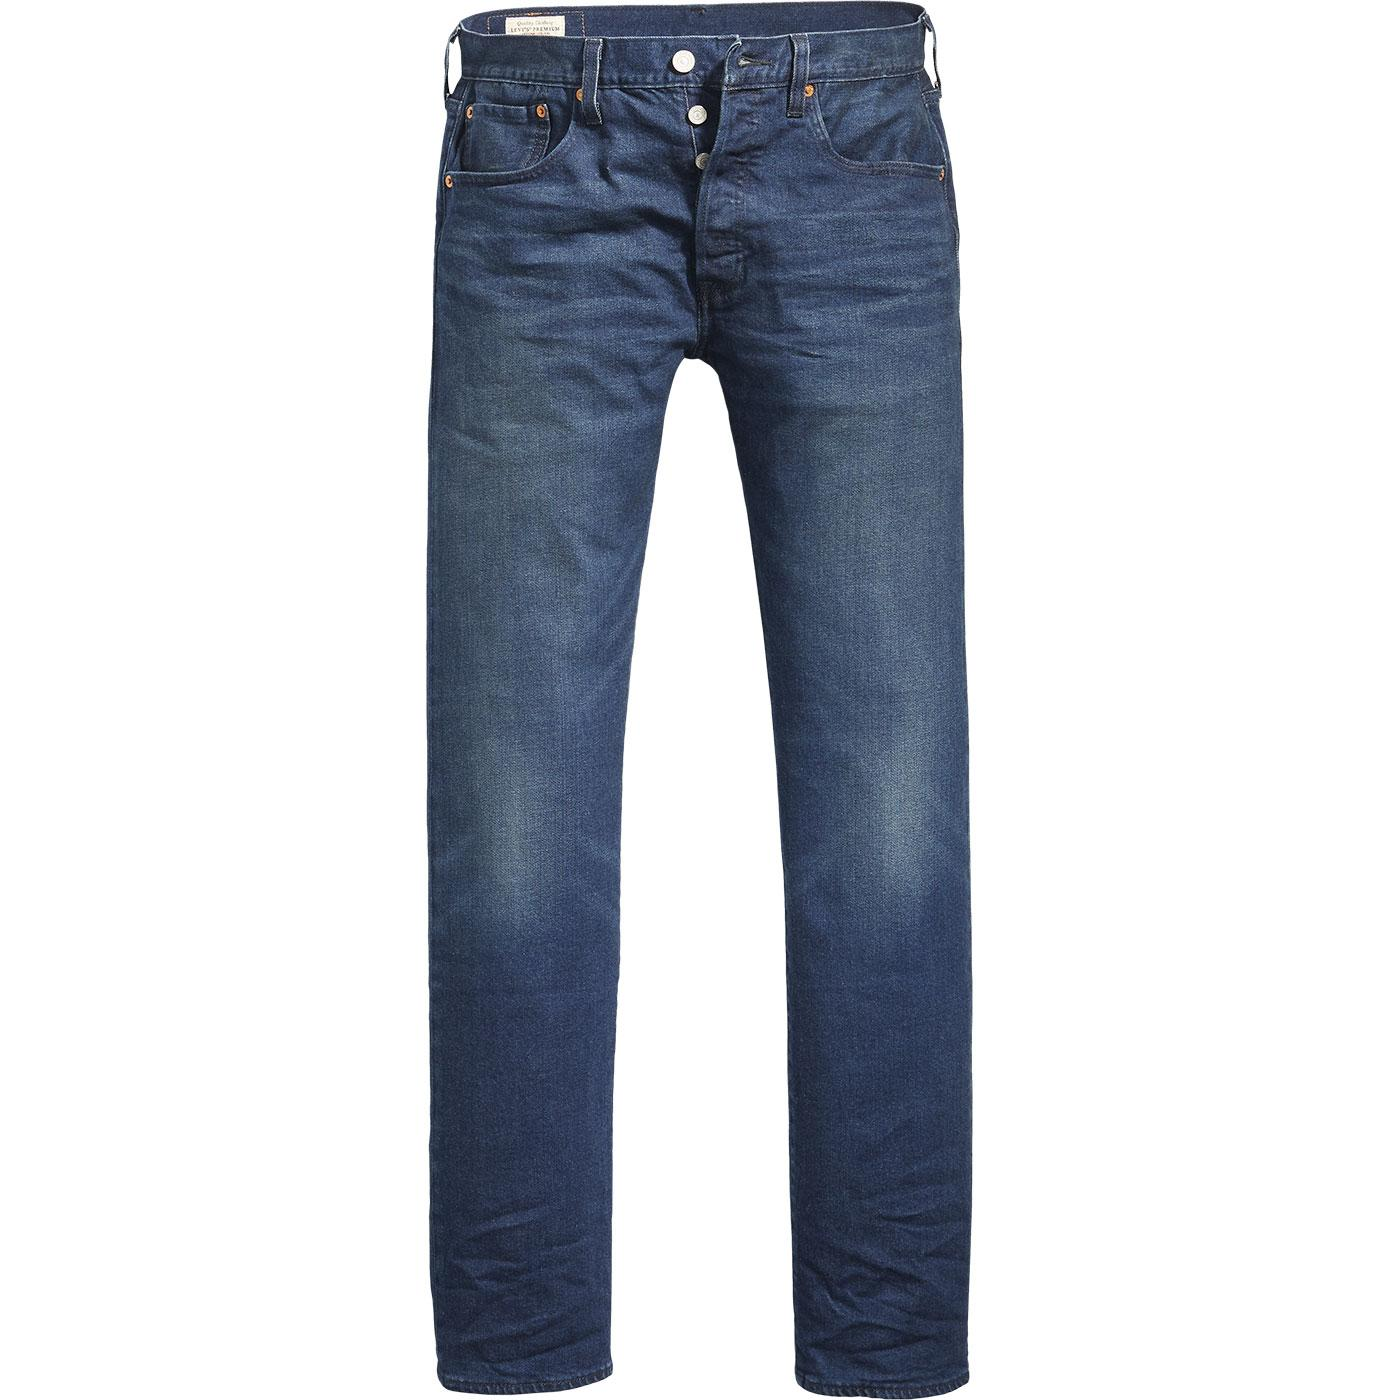 LEVI'S 501 Original Straight Leg Jeans BOARED TNL